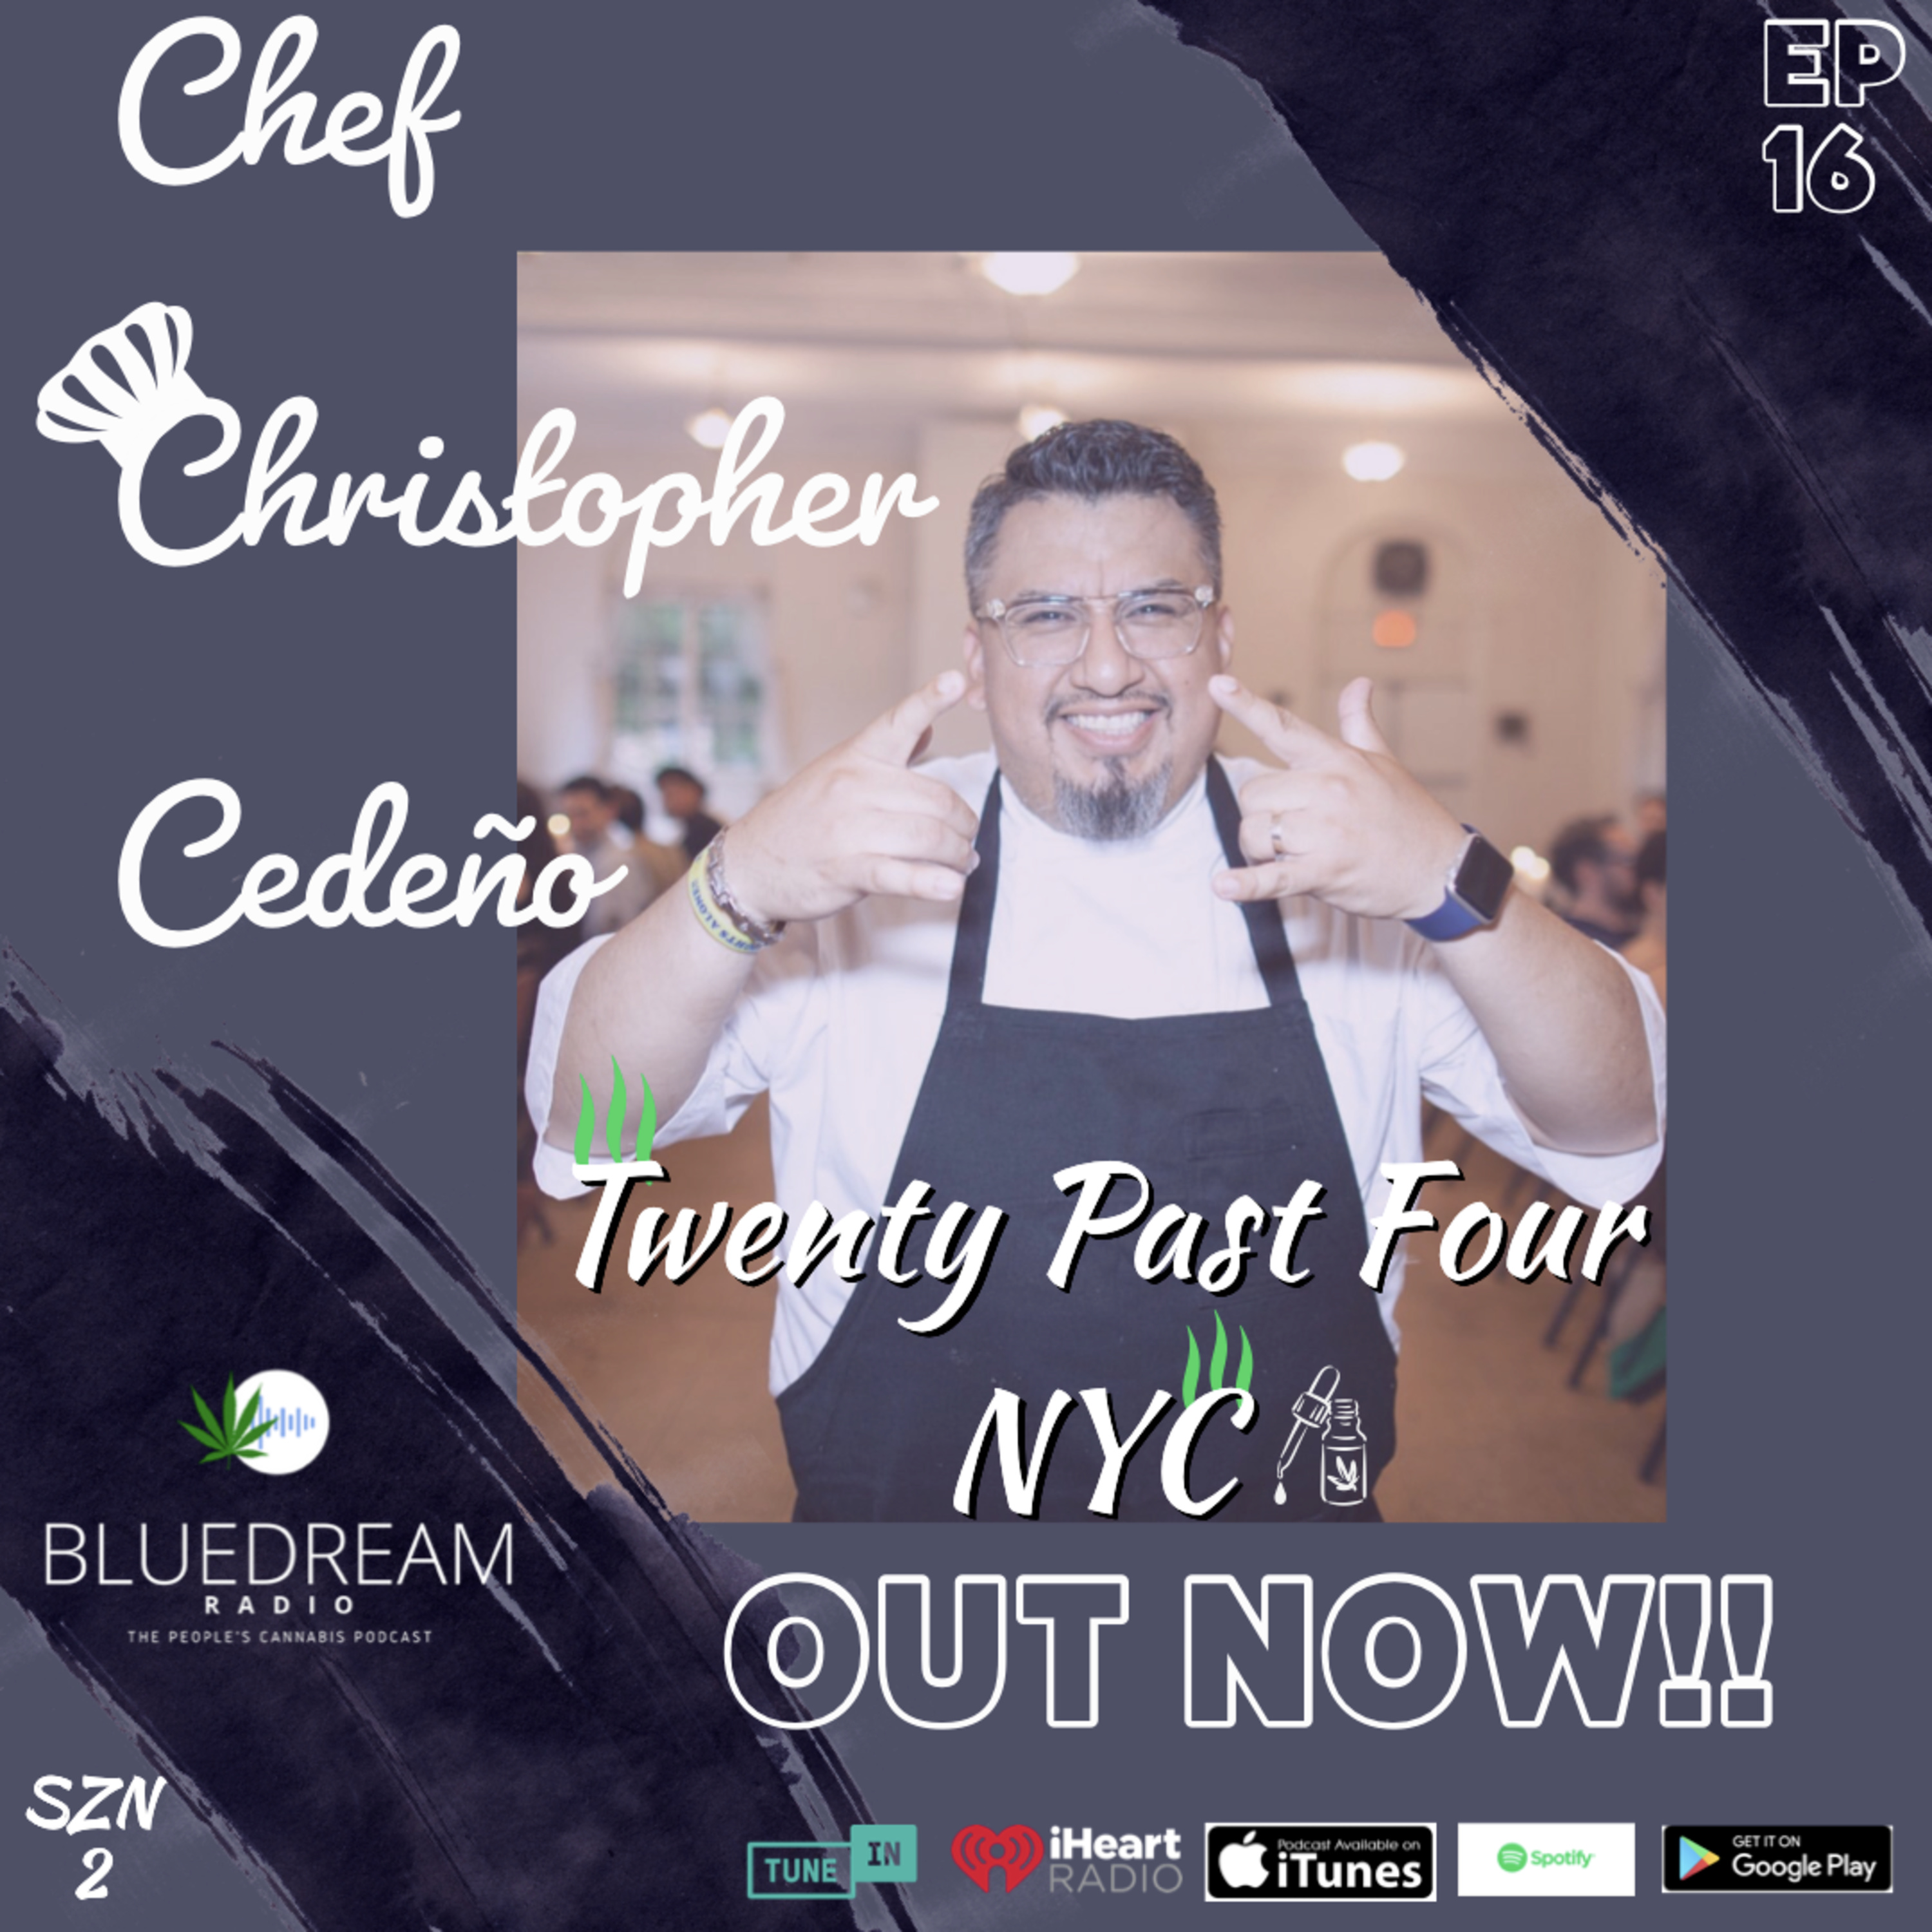 The Last Interview of Chef Chris!! R.I.P